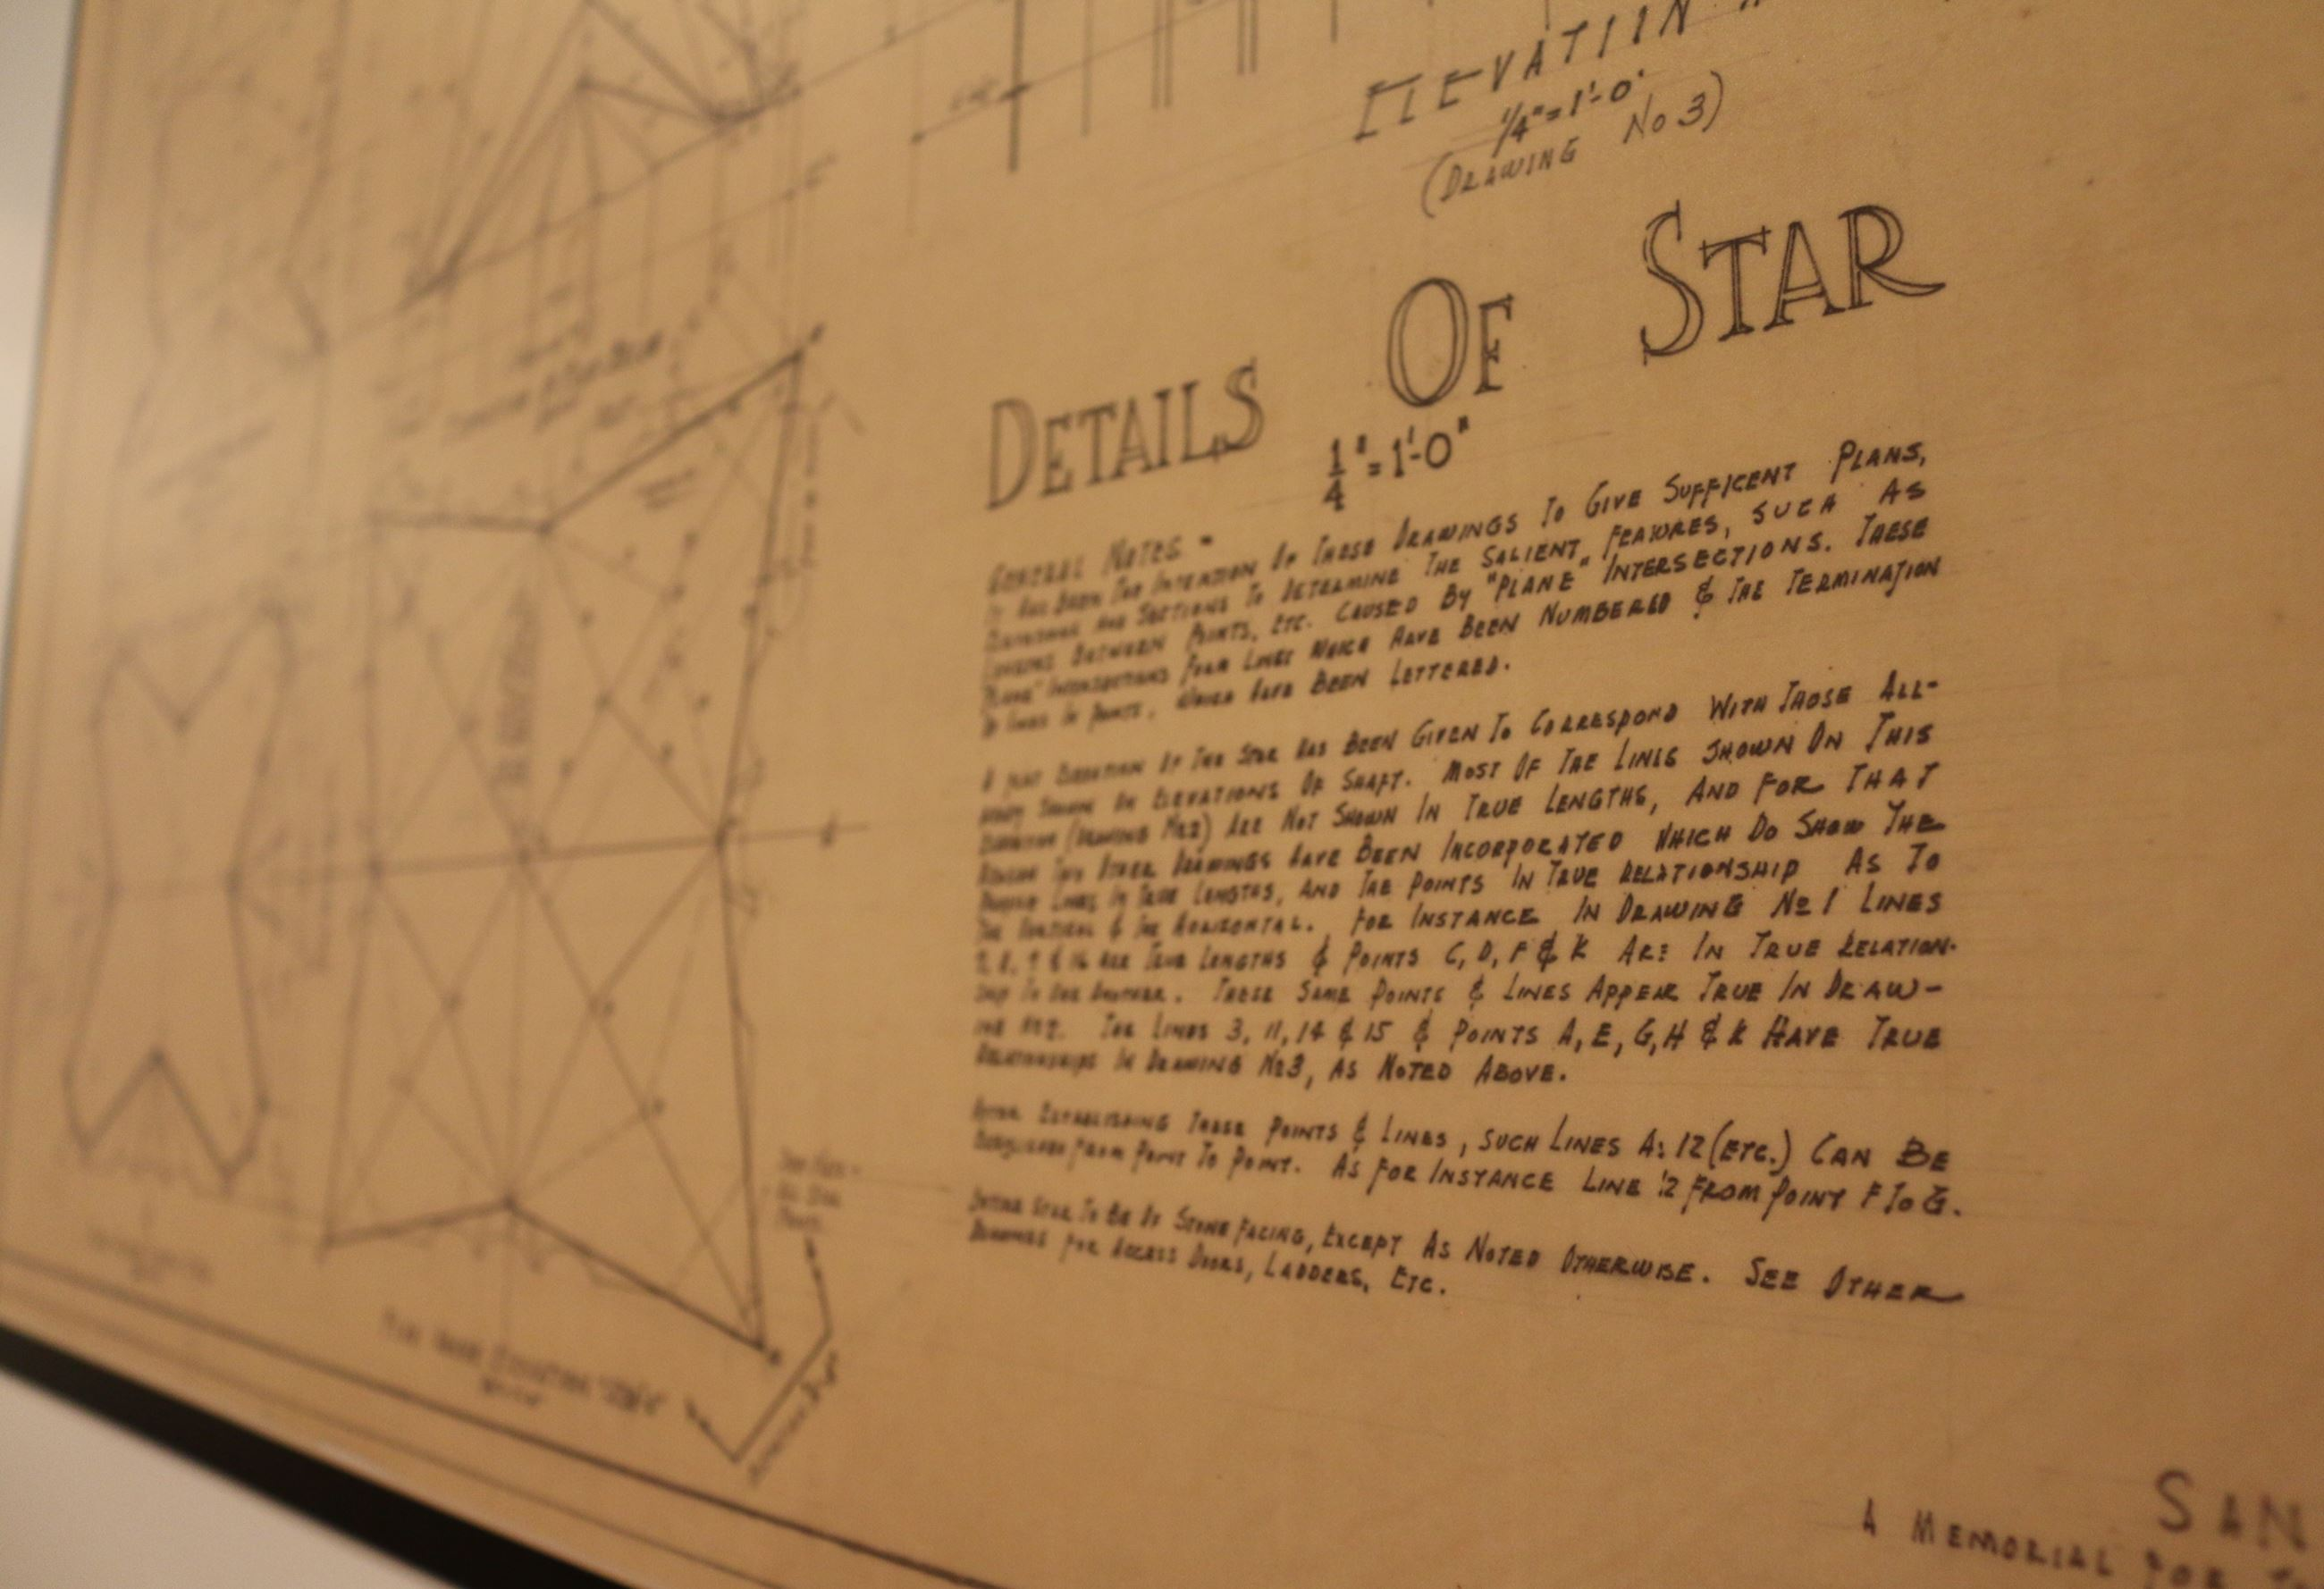 Details of star